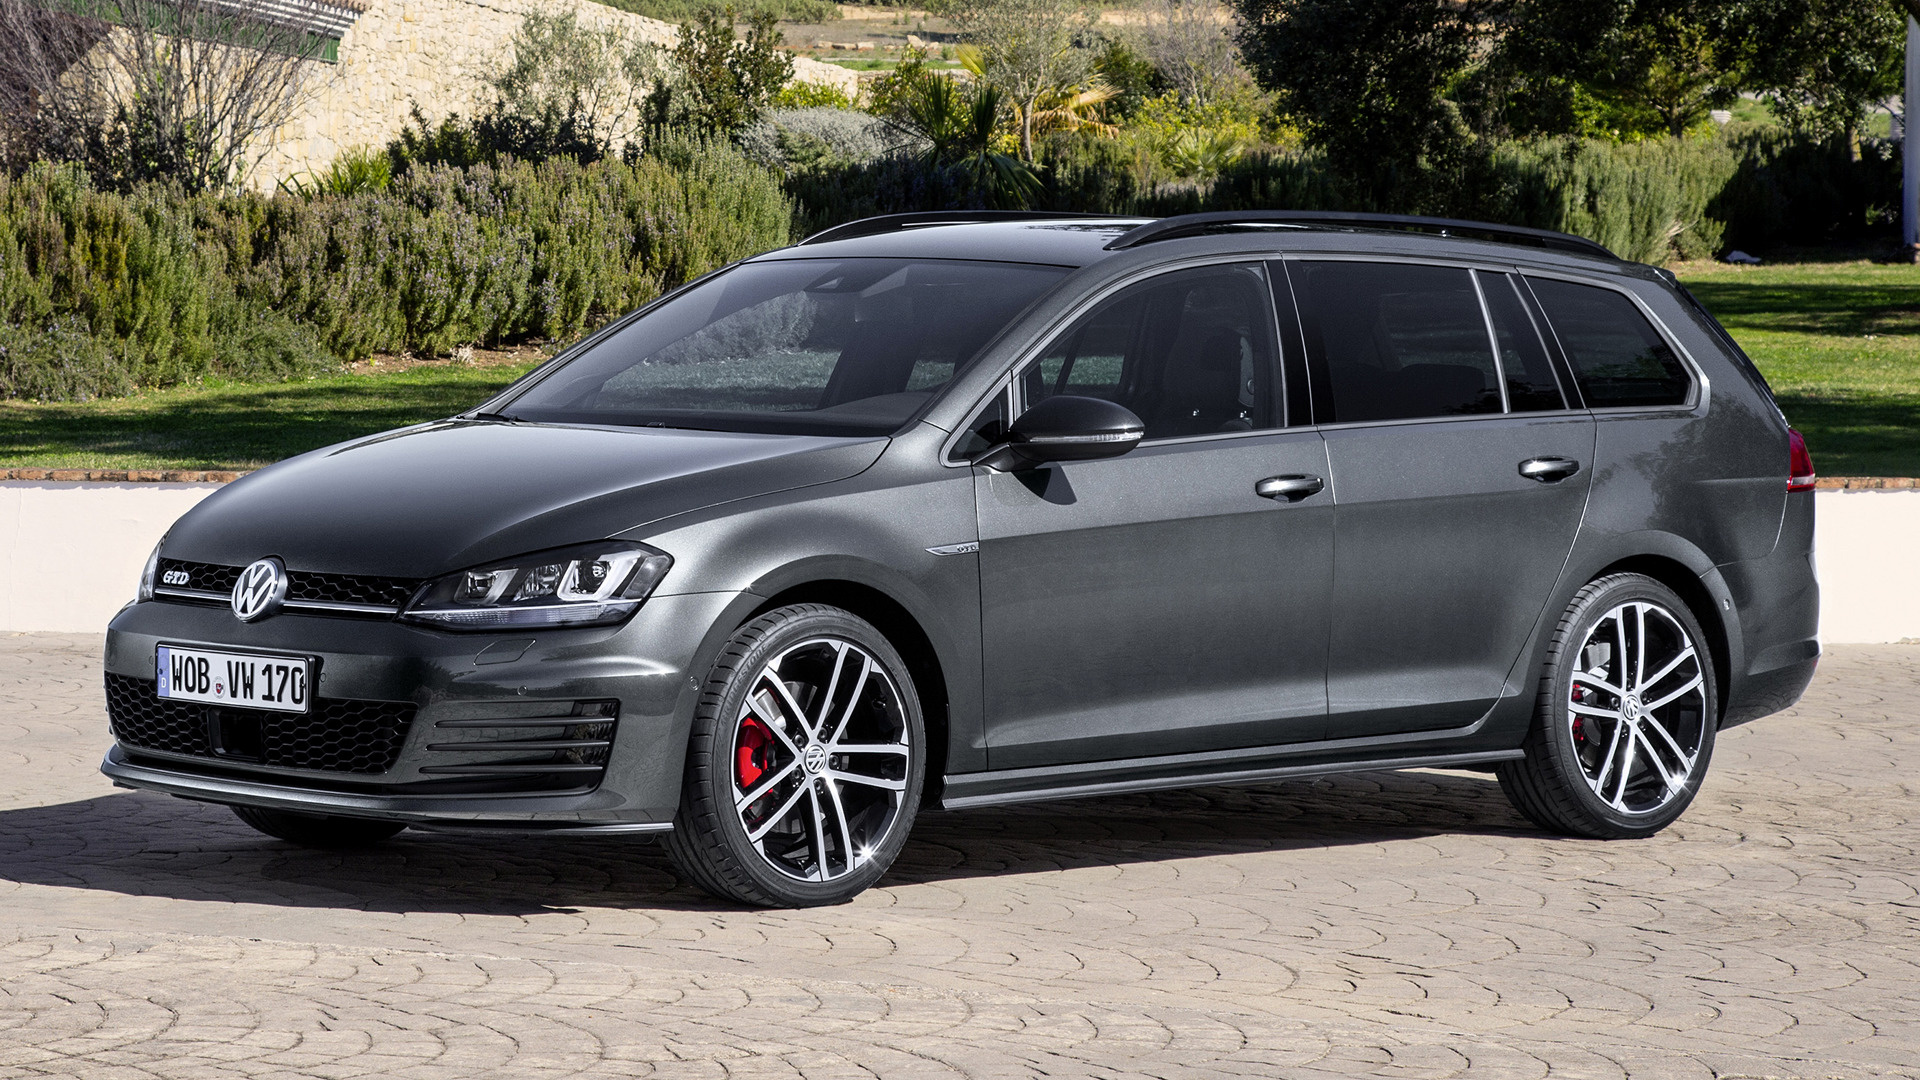 2015 volkswagen golf vi variant pictures information and specs auto. Black Bedroom Furniture Sets. Home Design Ideas